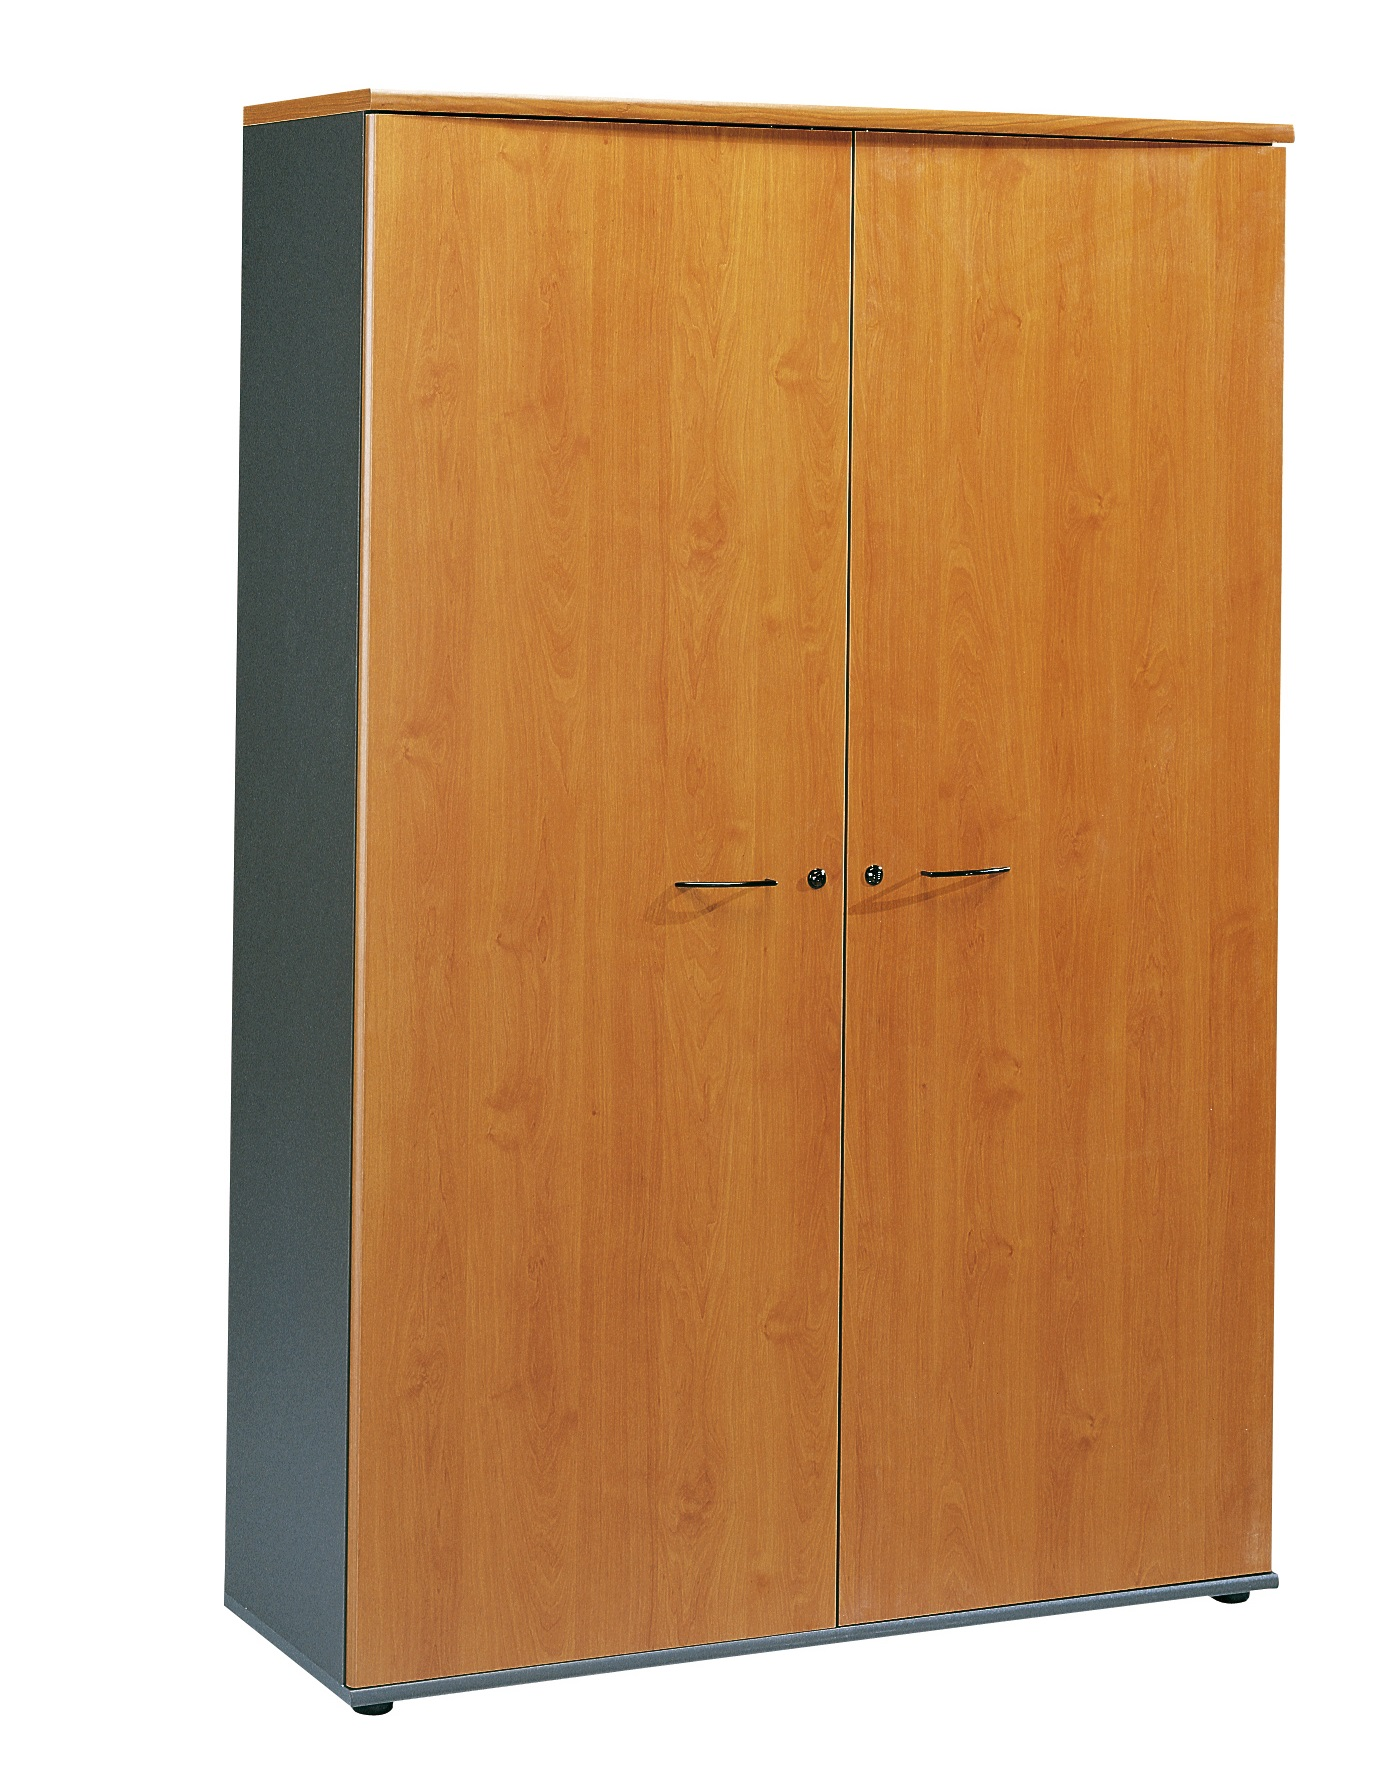 jazz aulne armoire 2 portes 120cm rangements meubles armoires. Black Bedroom Furniture Sets. Home Design Ideas